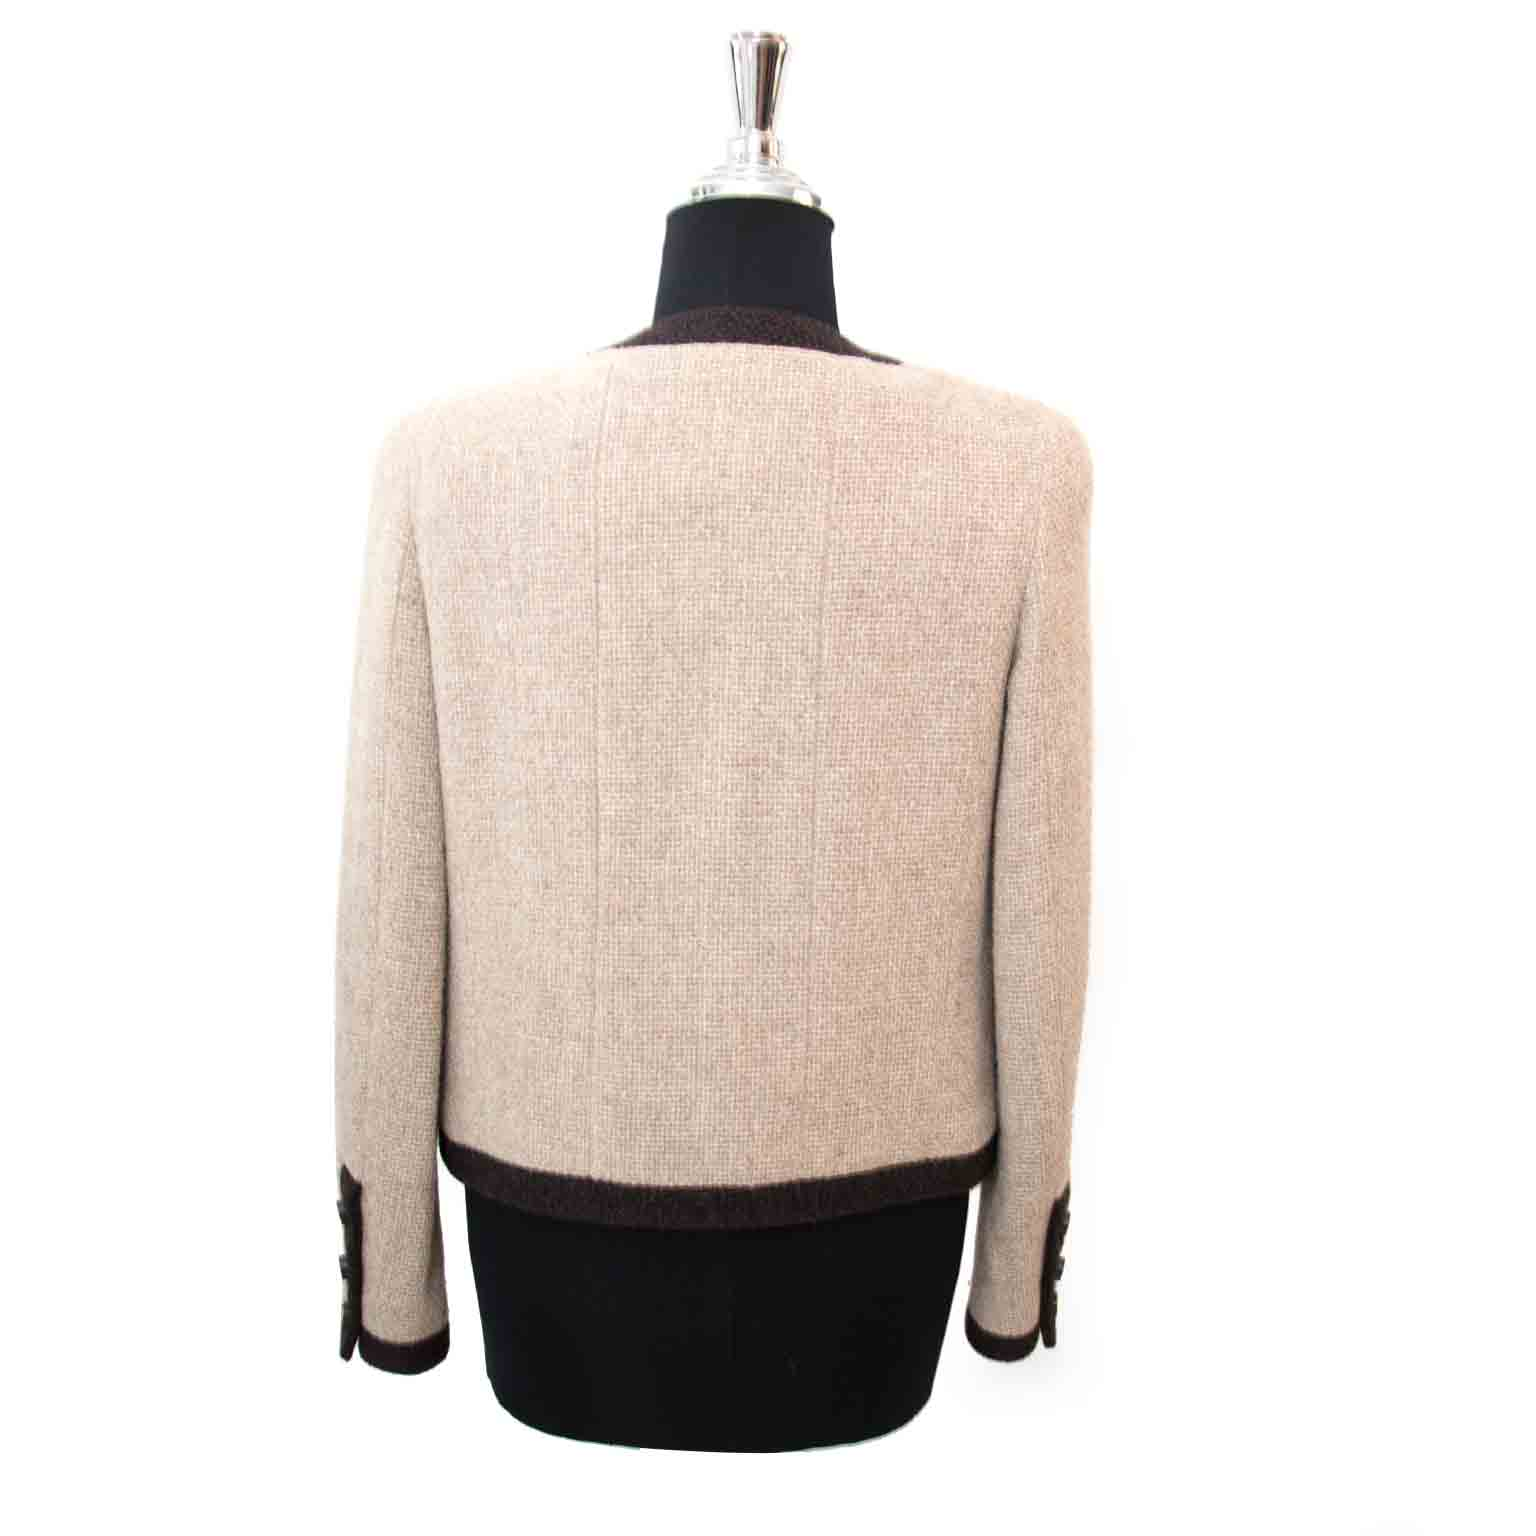 Chanel Woolen Beige - Brown Jacket Size 36 at the best price 2017